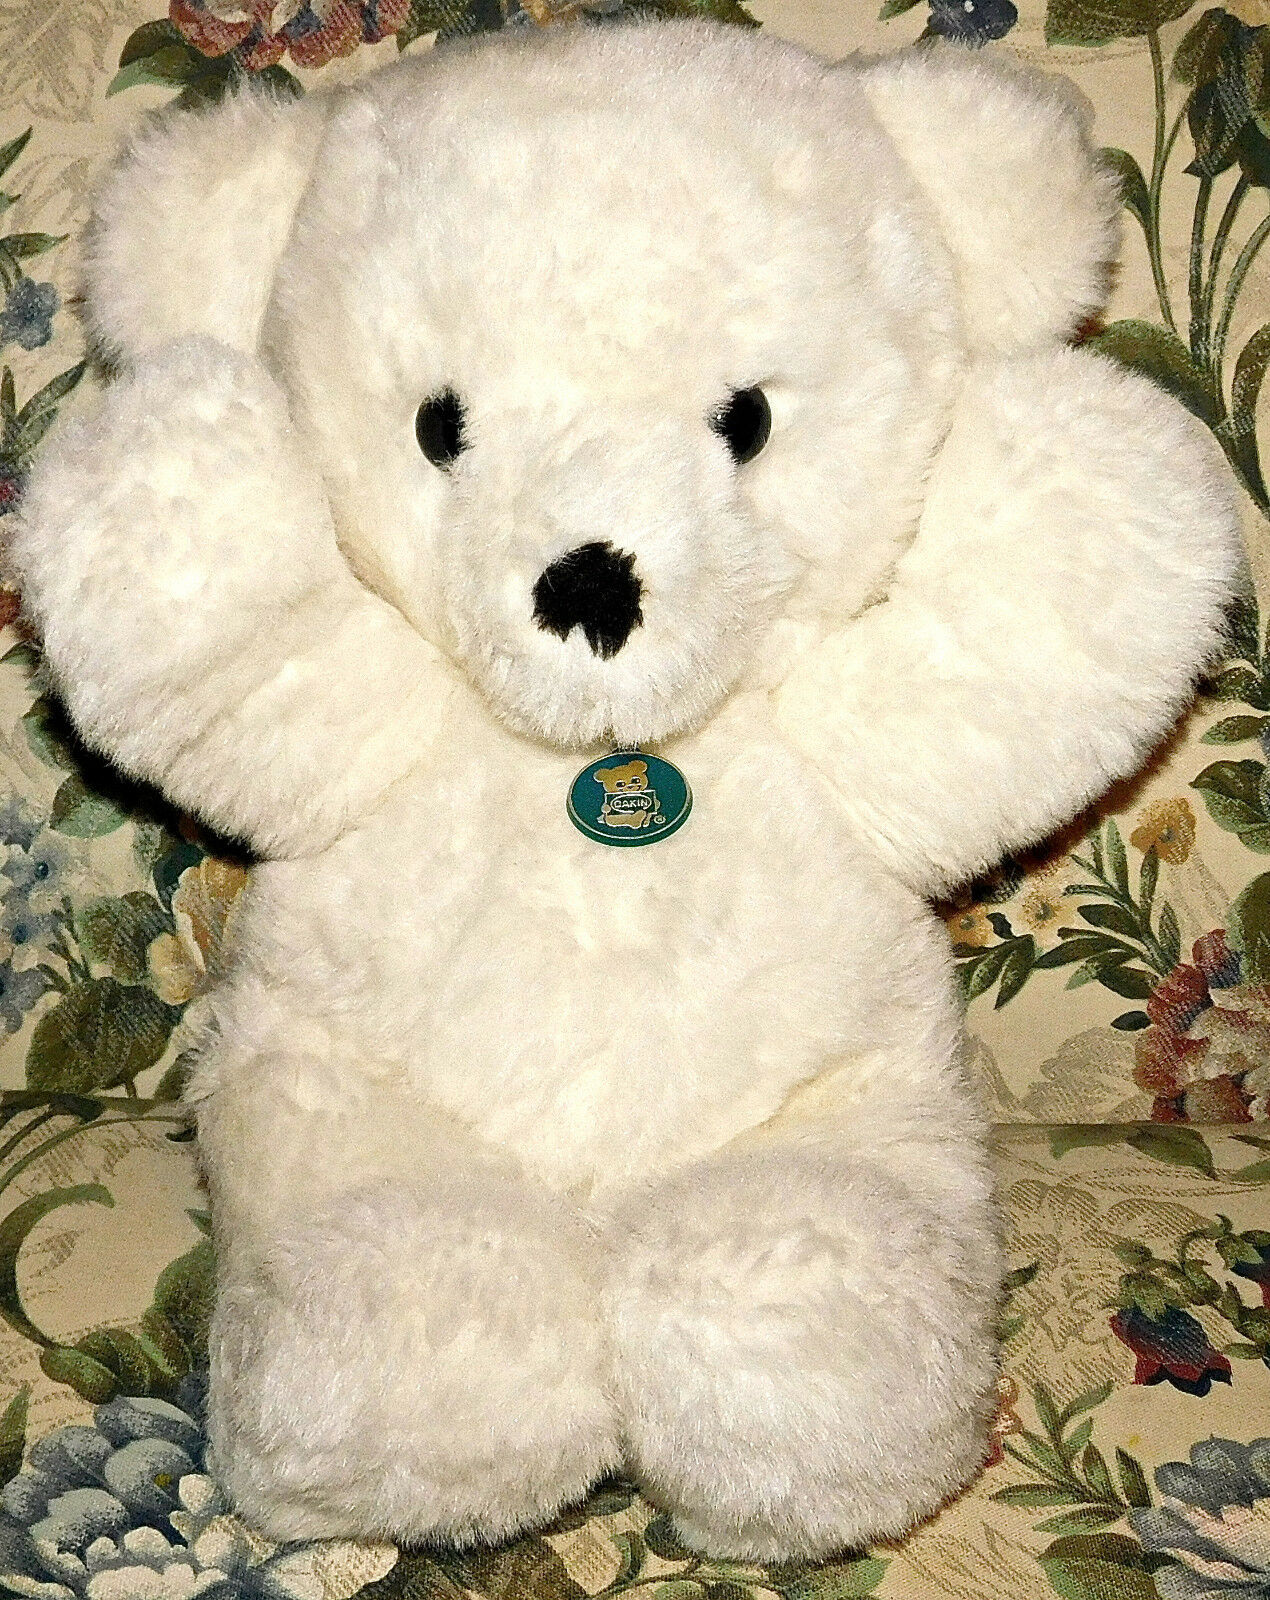 DAKIN SOFT Weiß Cuddles Bear Teddy Plush 18